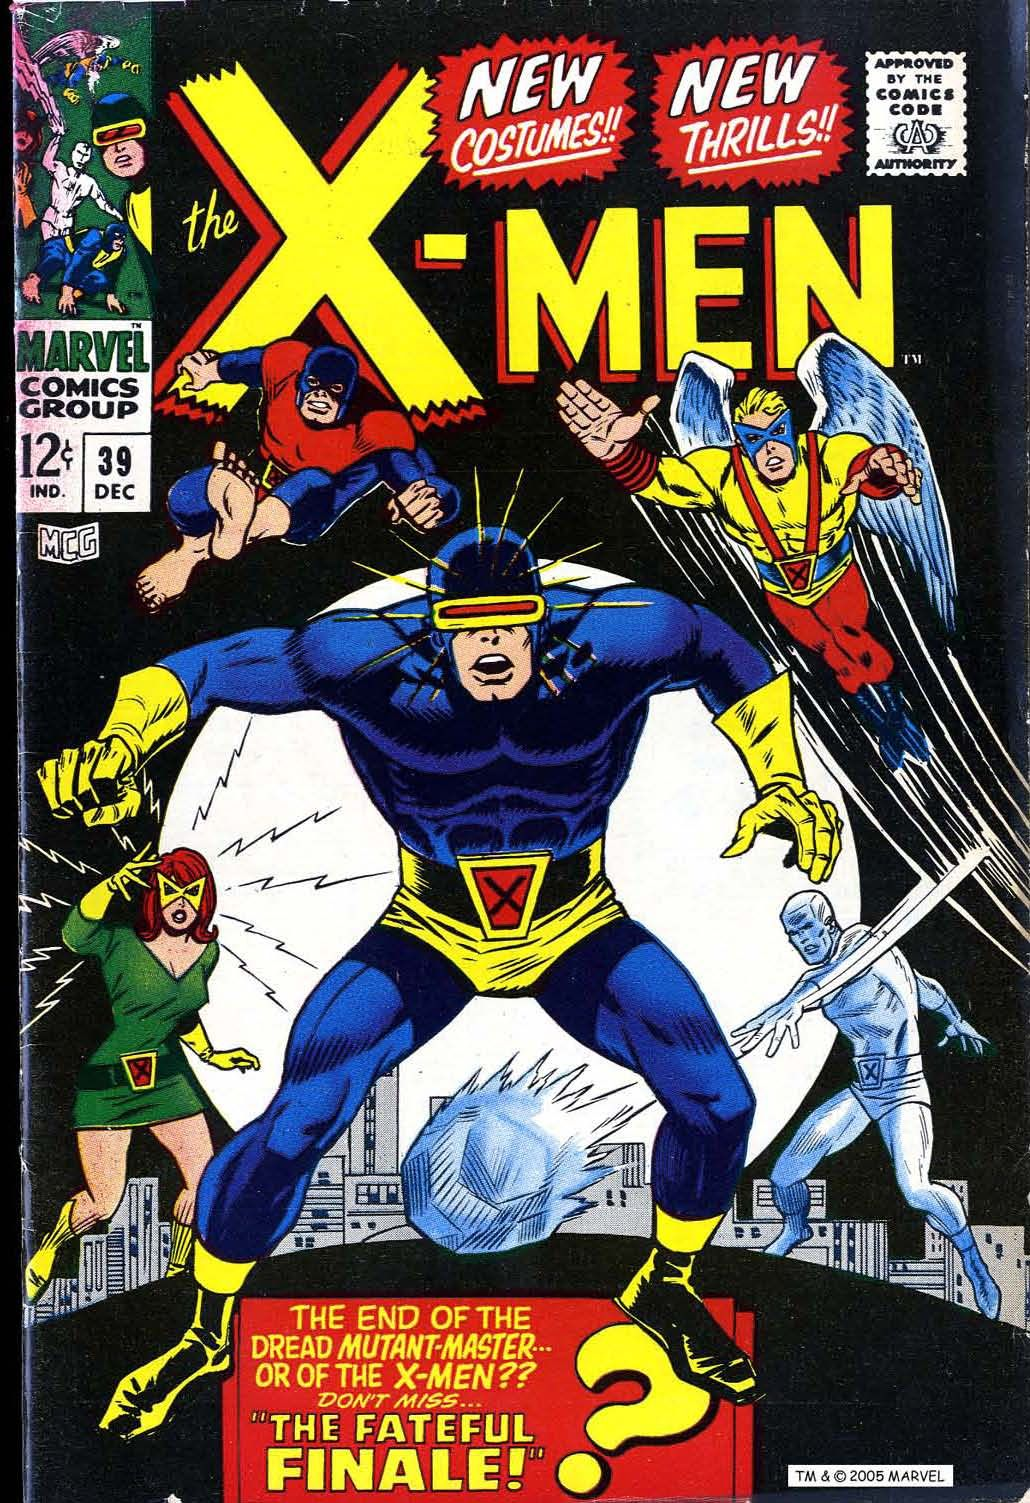 X Men Vol 1 39 Silver Age Comics Marvel Comics Covers Comics